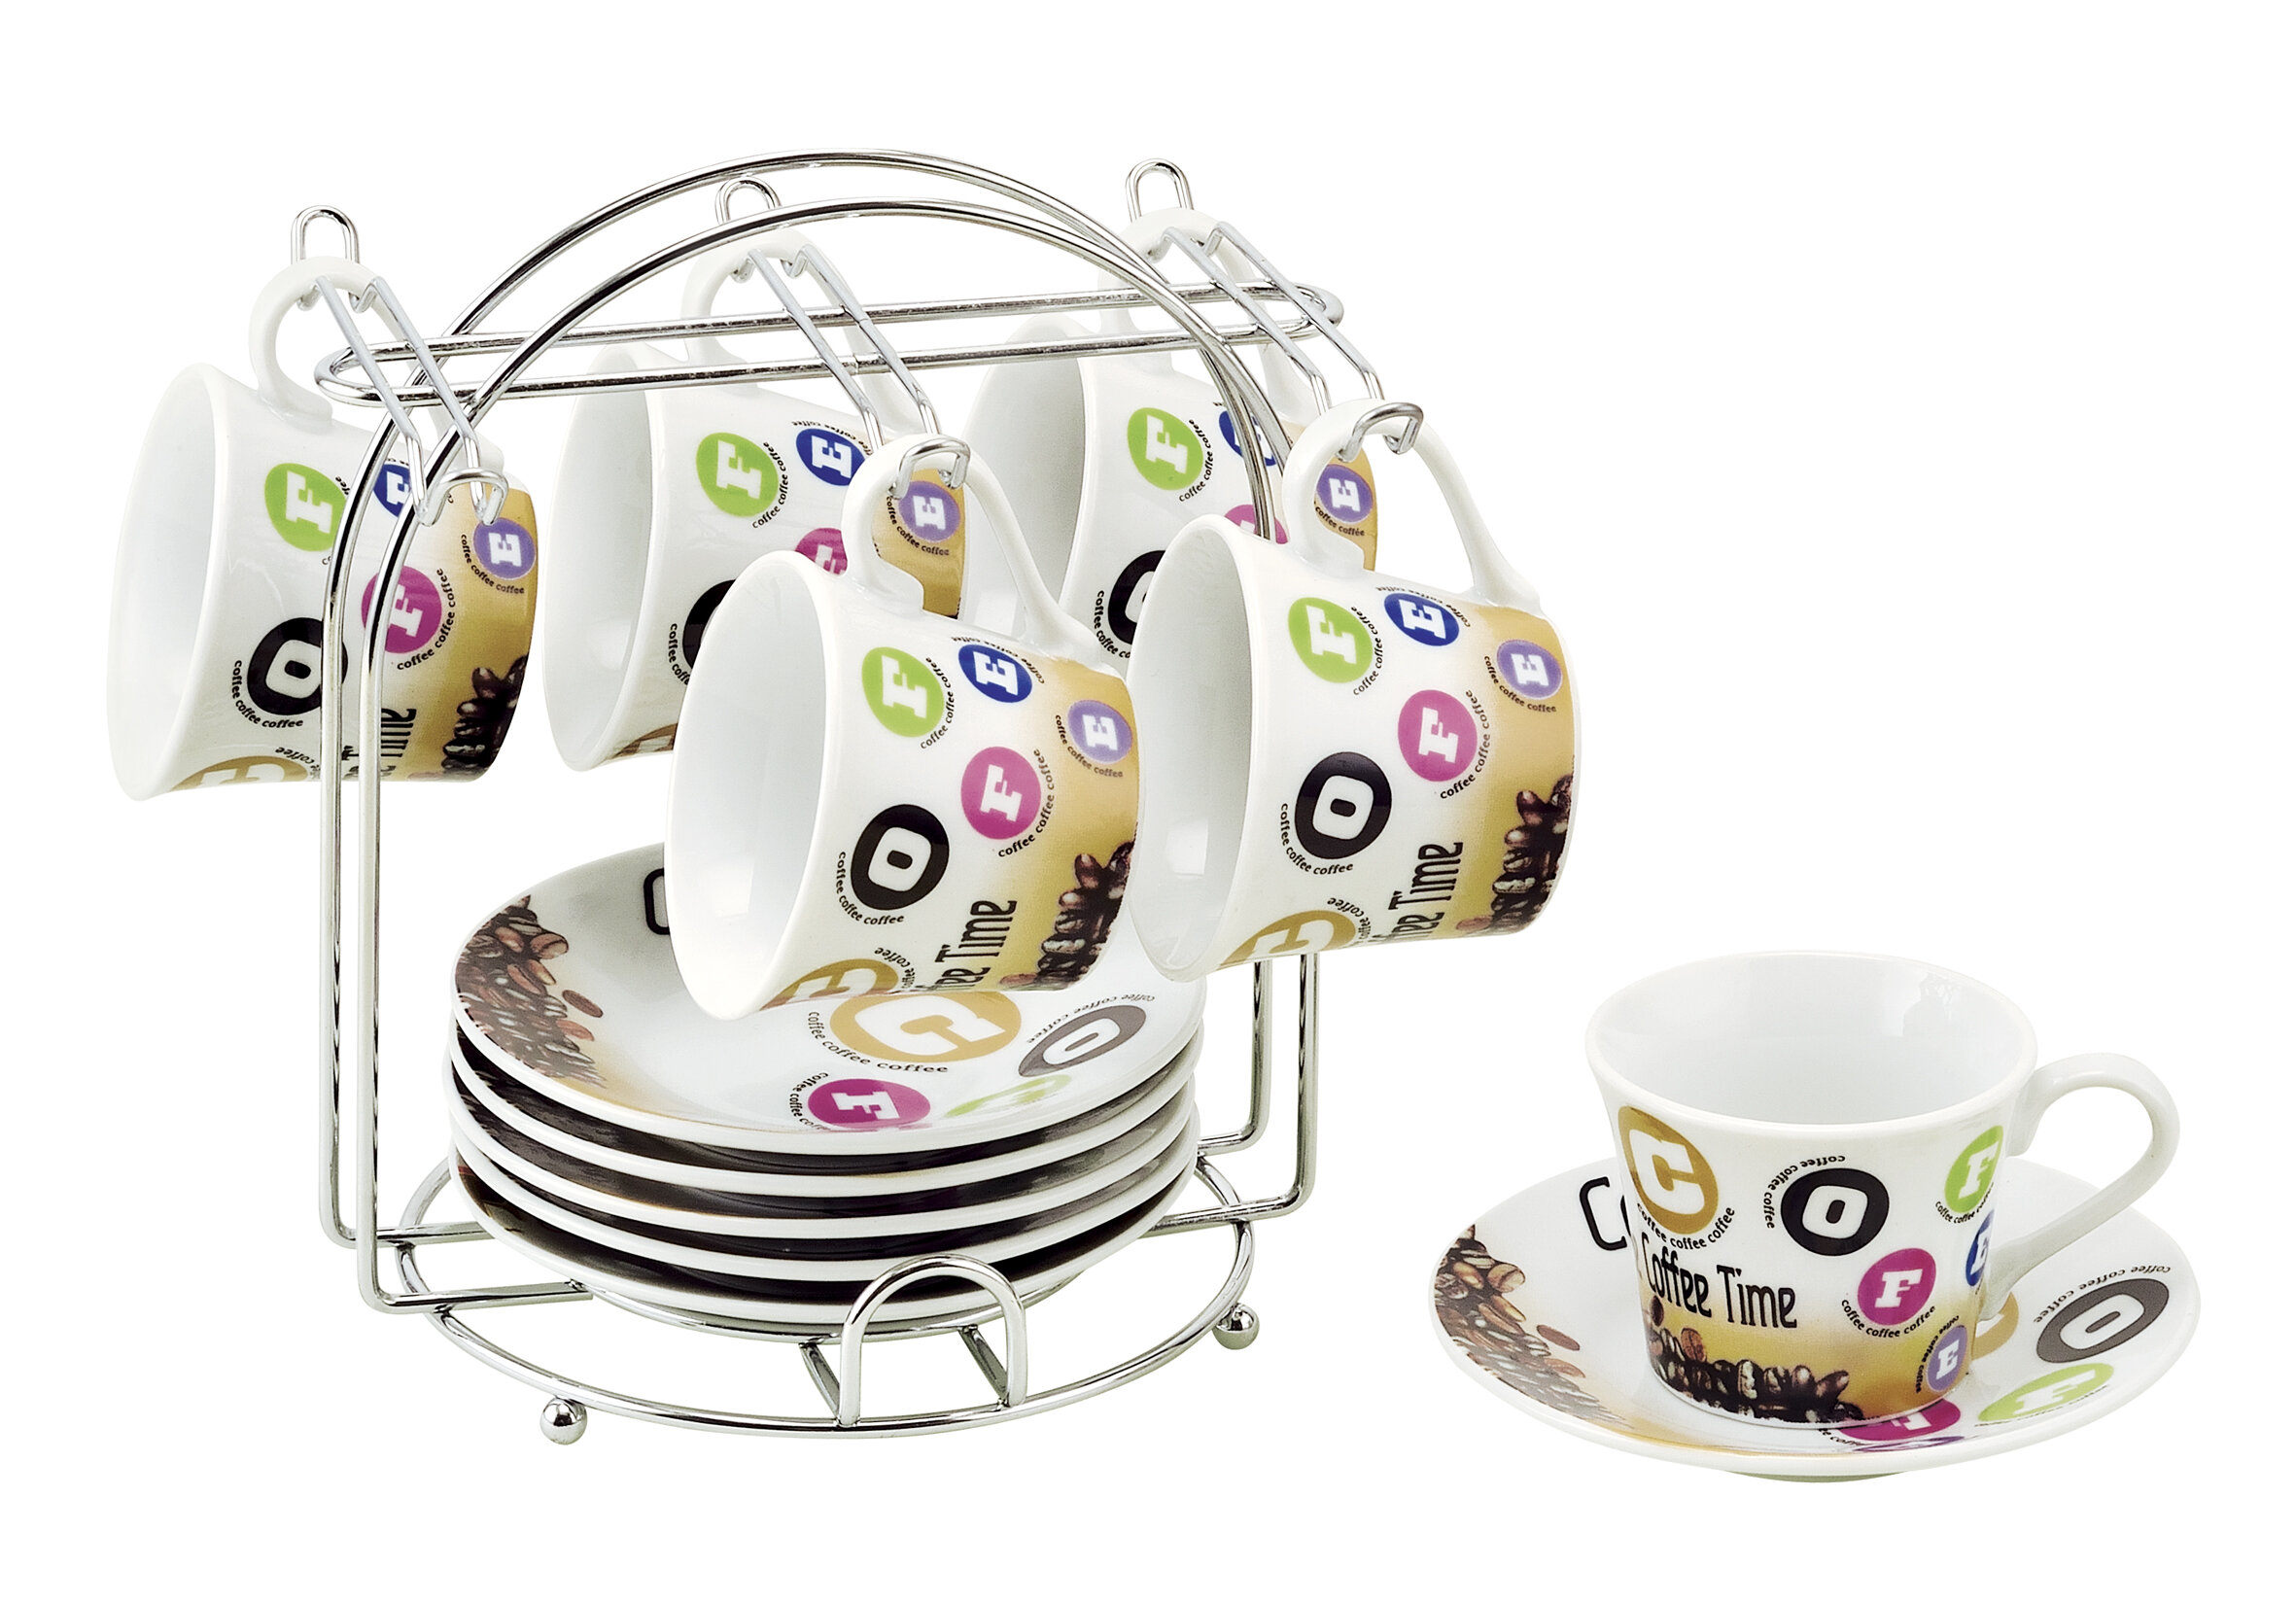 Lorren Home Trends Espresso Cup And Saucer Set With Metal Stand Wayfair